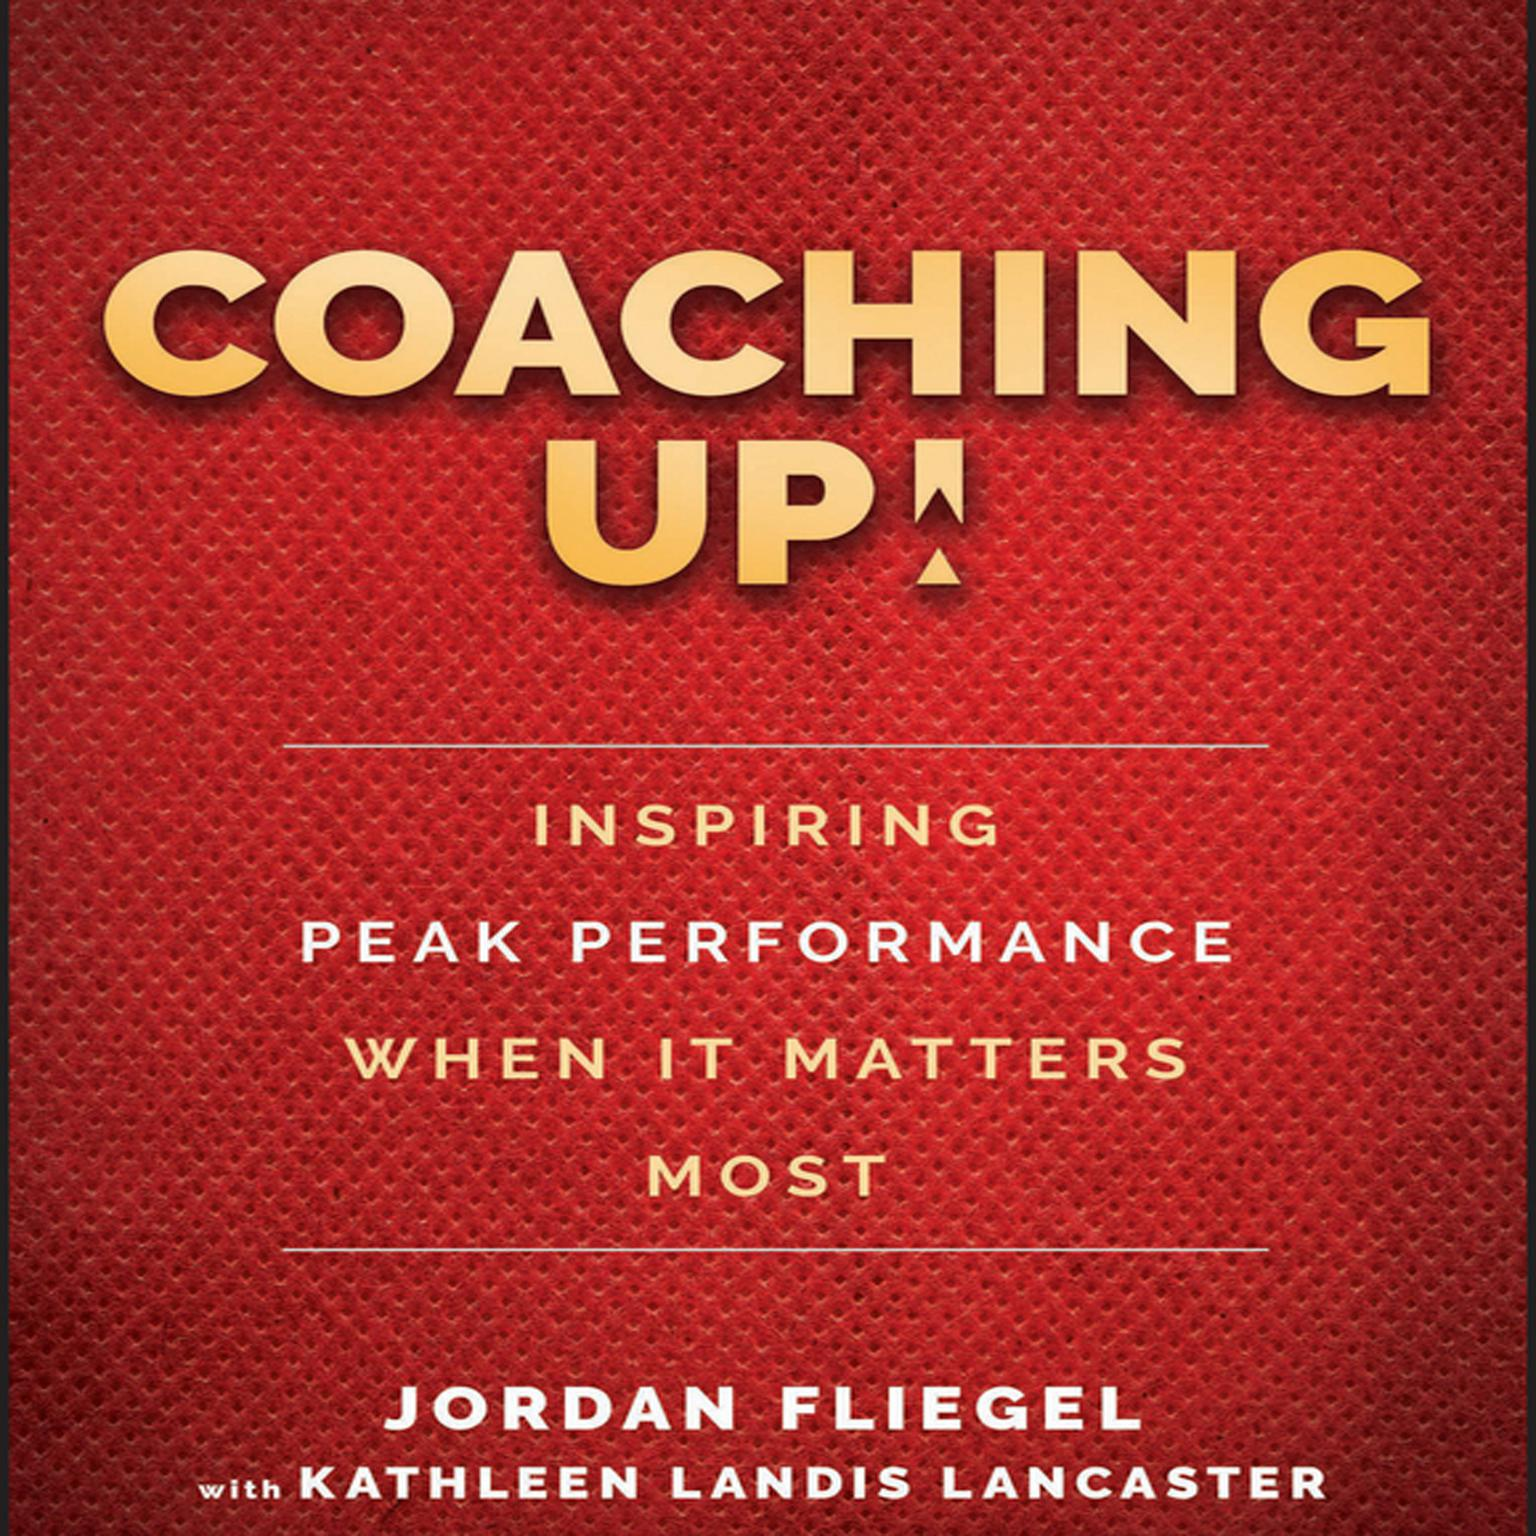 Printable Coaching Up!: Inspiring Peak Performance When It Matters Most Audiobook Cover Art